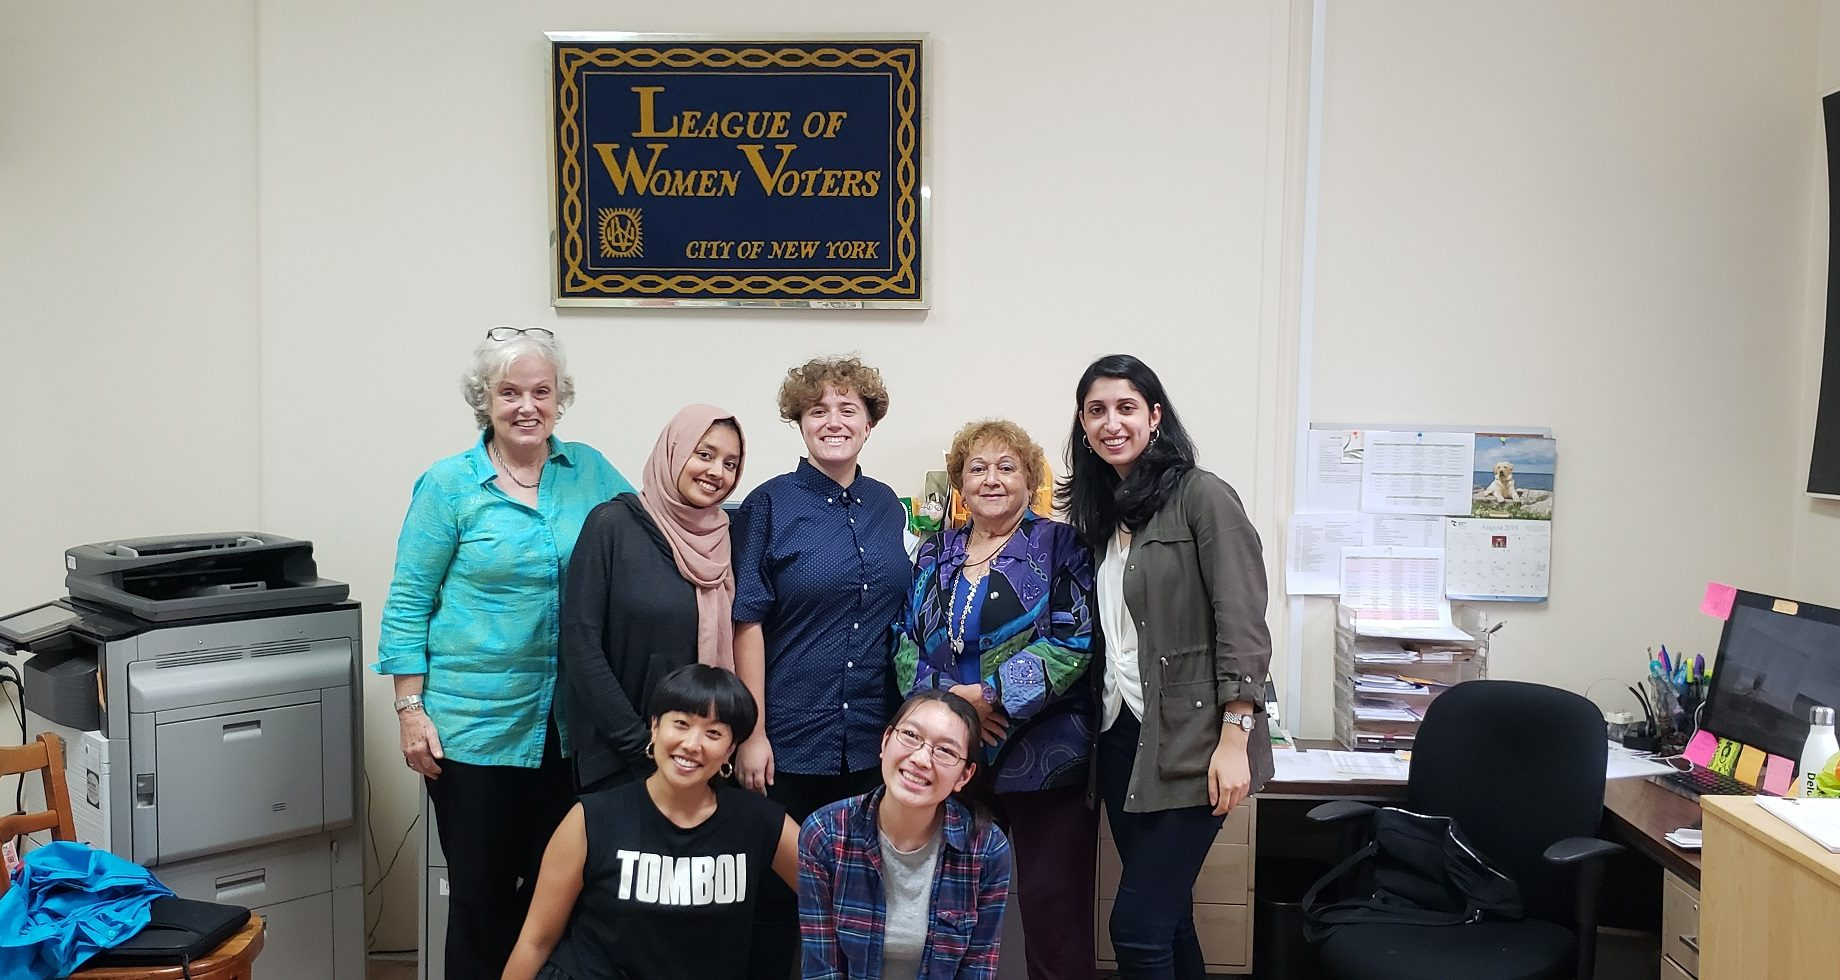 League of Women Voters Ladders for Leaders interns